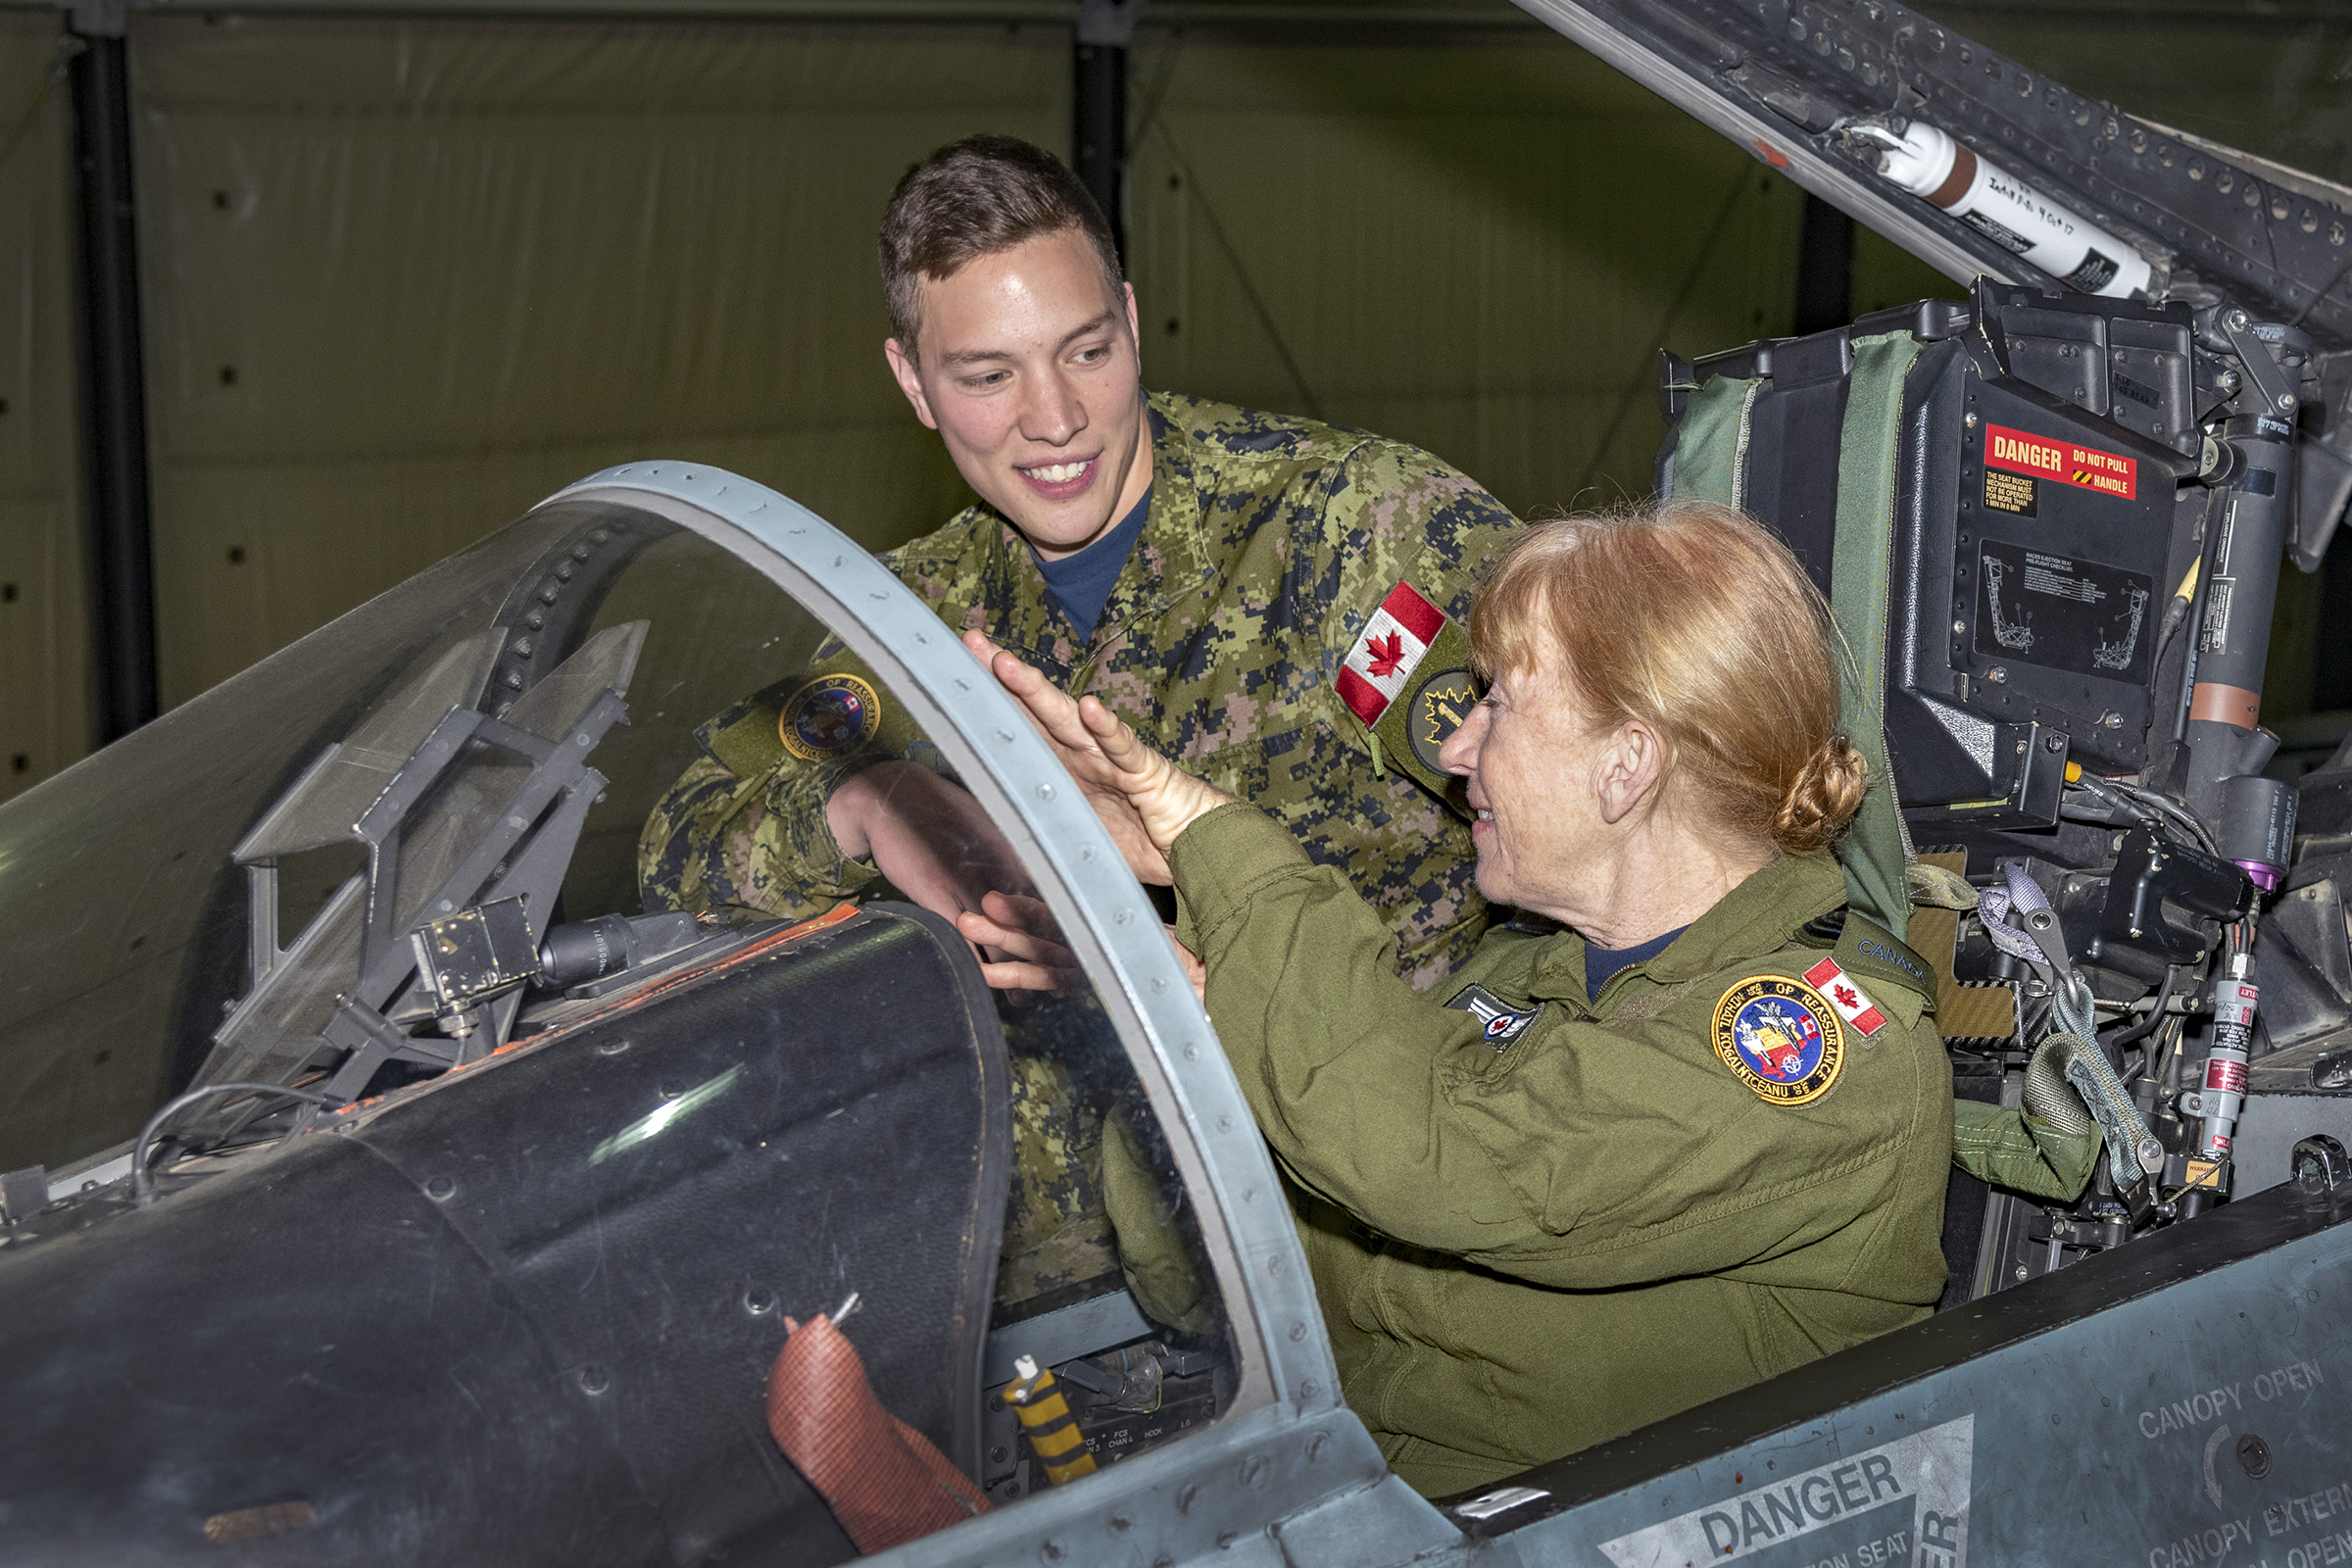 Corporal Benjamin Peddle briefs RCAF Honorary Colonel Loreena McKennitt about the CF-188 Hornet fighter jet on December 14, 2019, during her visit to Air Task Force-Romania at the Mihail Kogӑlniceanu Airbase. PHOTO: Leading Seaman Erica Seymour, RP26-2019-0038-017